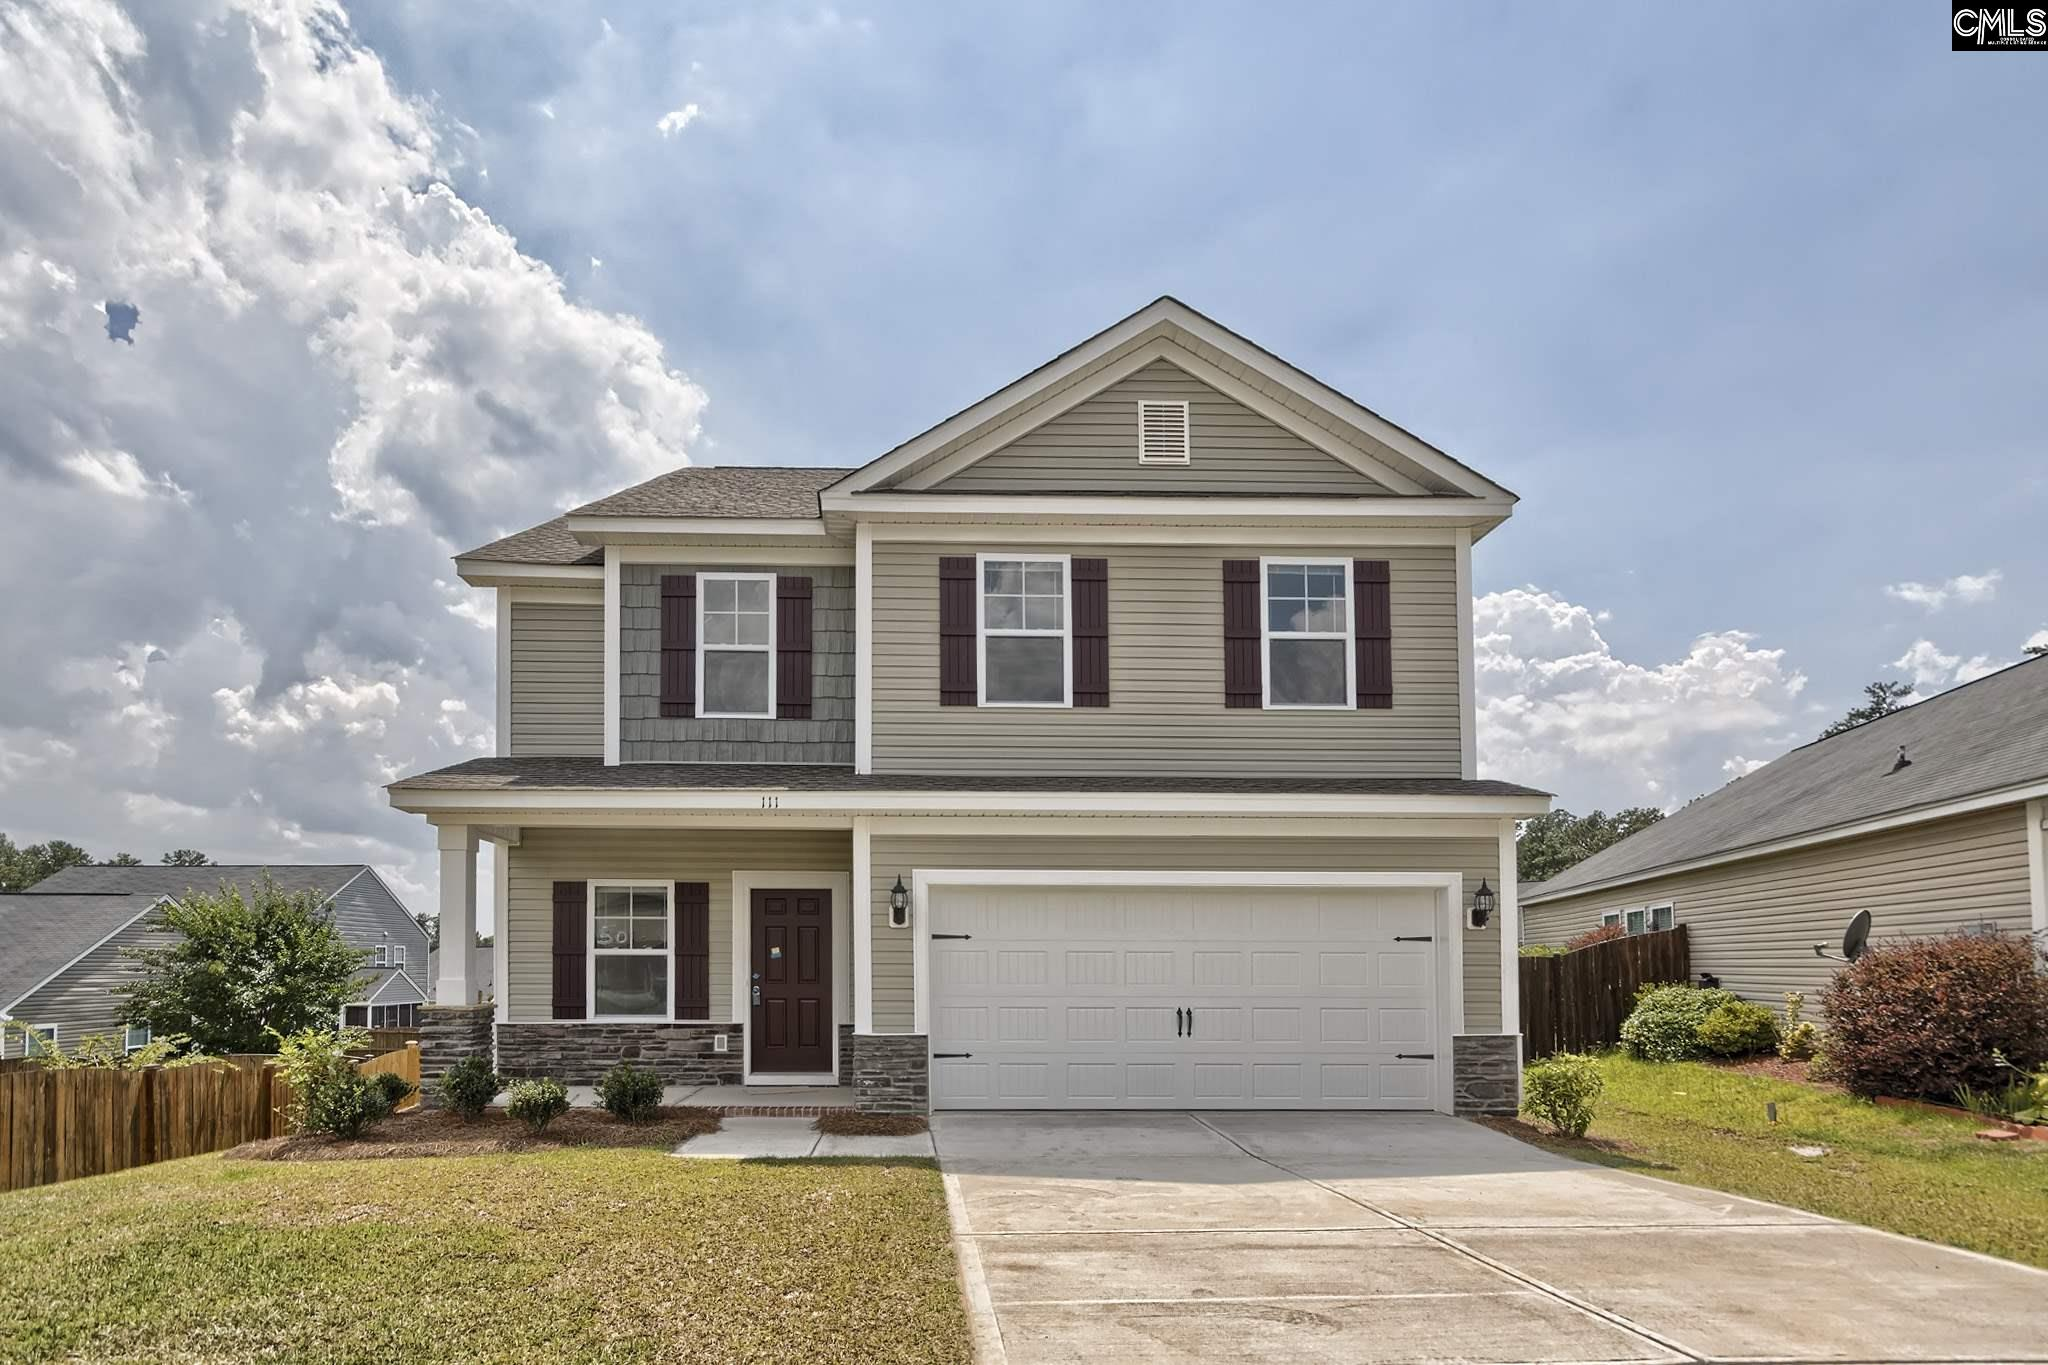 525 Matilda #226 West Columbia, SC 29170